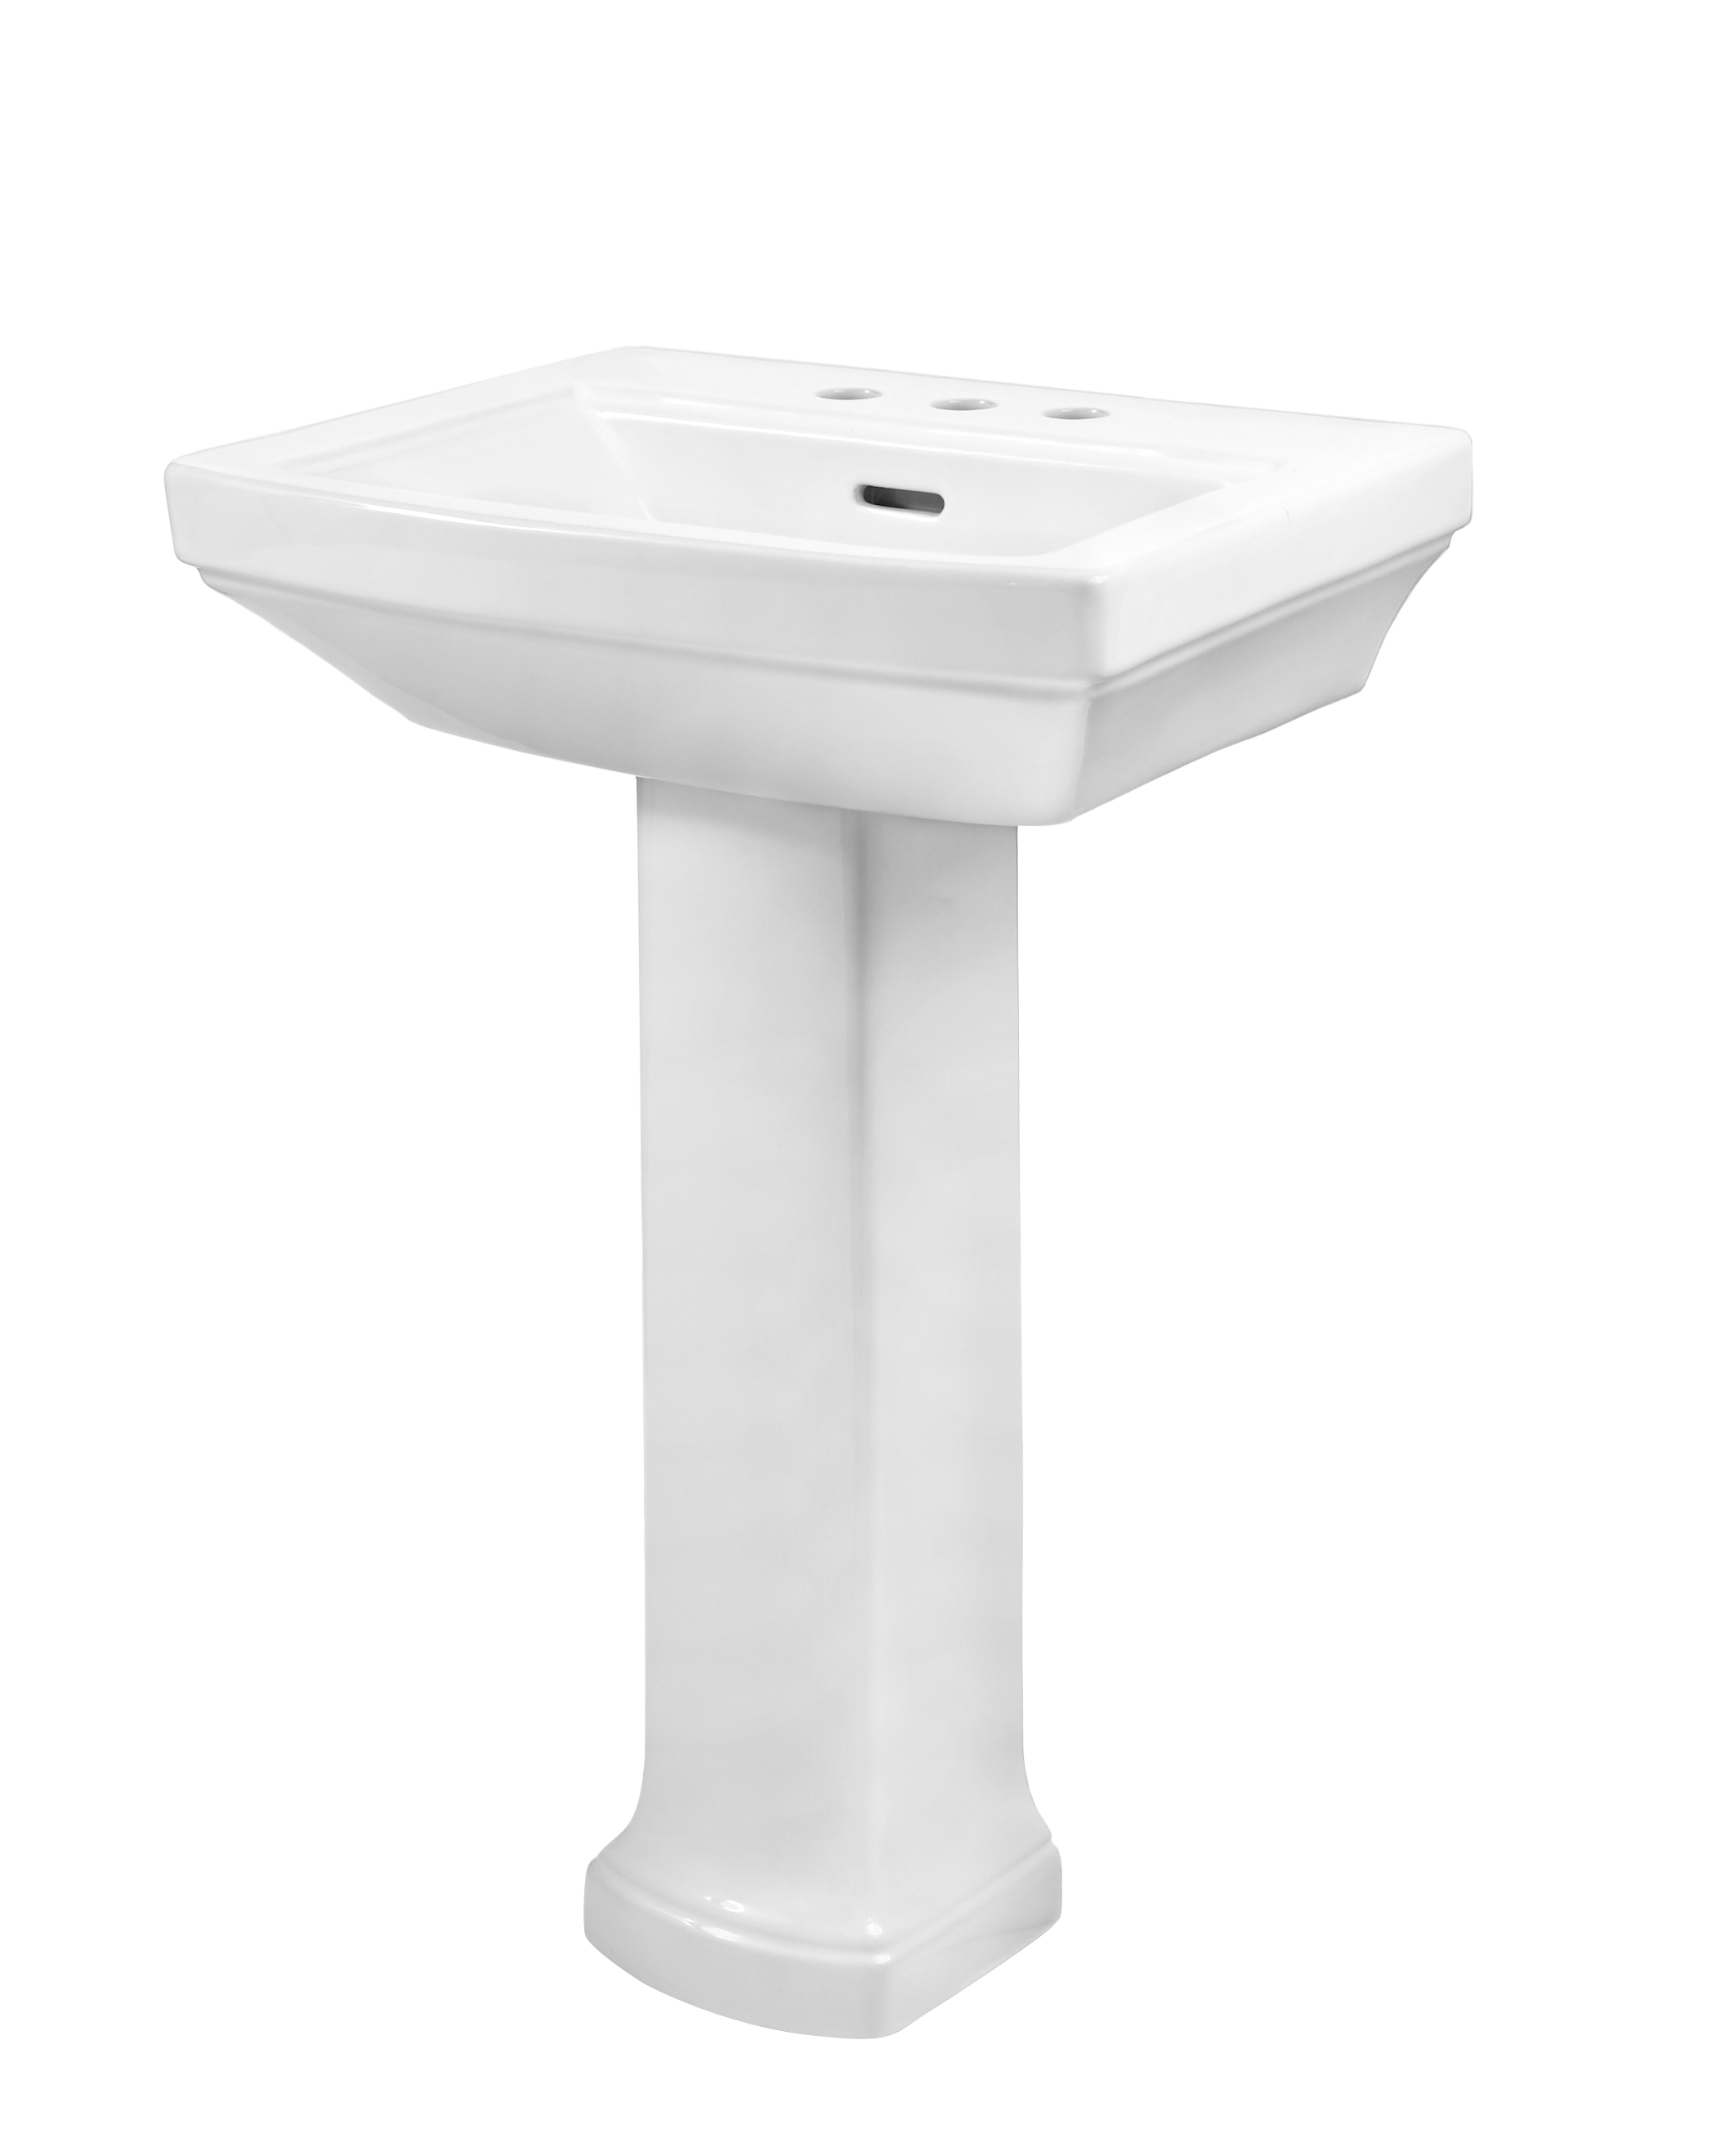 sink i picture of new pedestal sinks